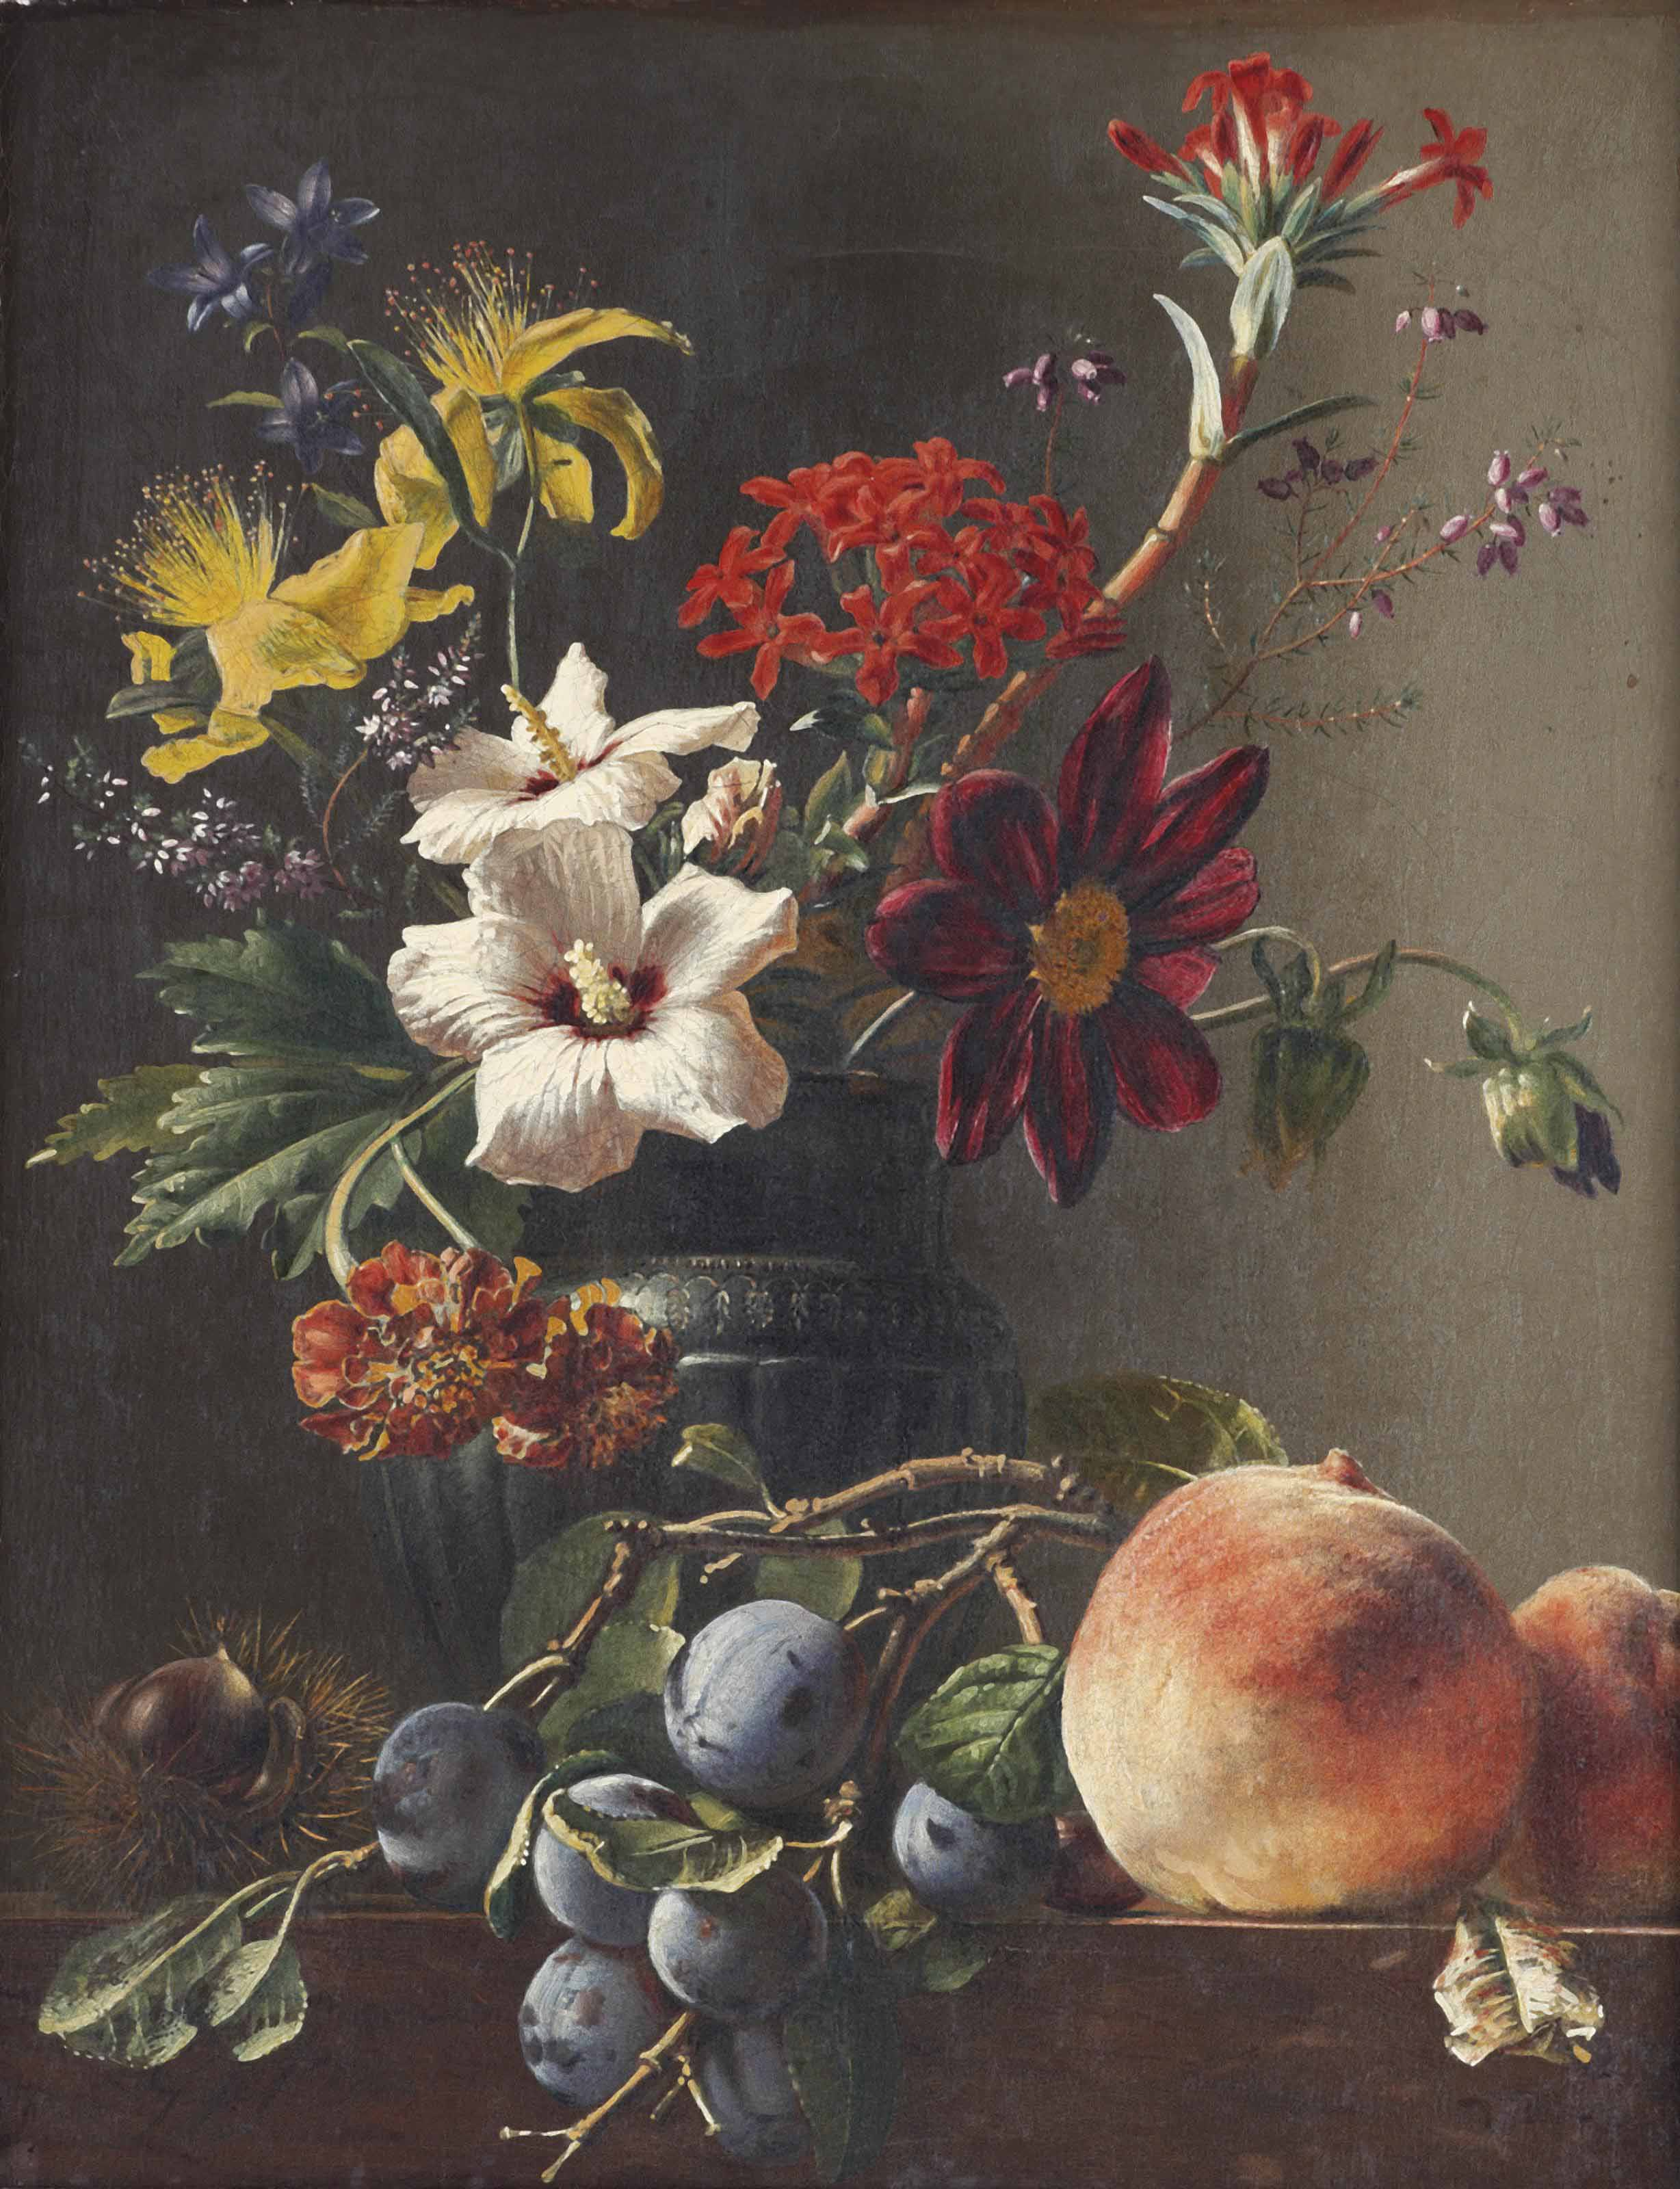 Bellflowers, dahlias, hypericum and other flowers in a vase, with a chestnut, prunes and peaches on a ledge